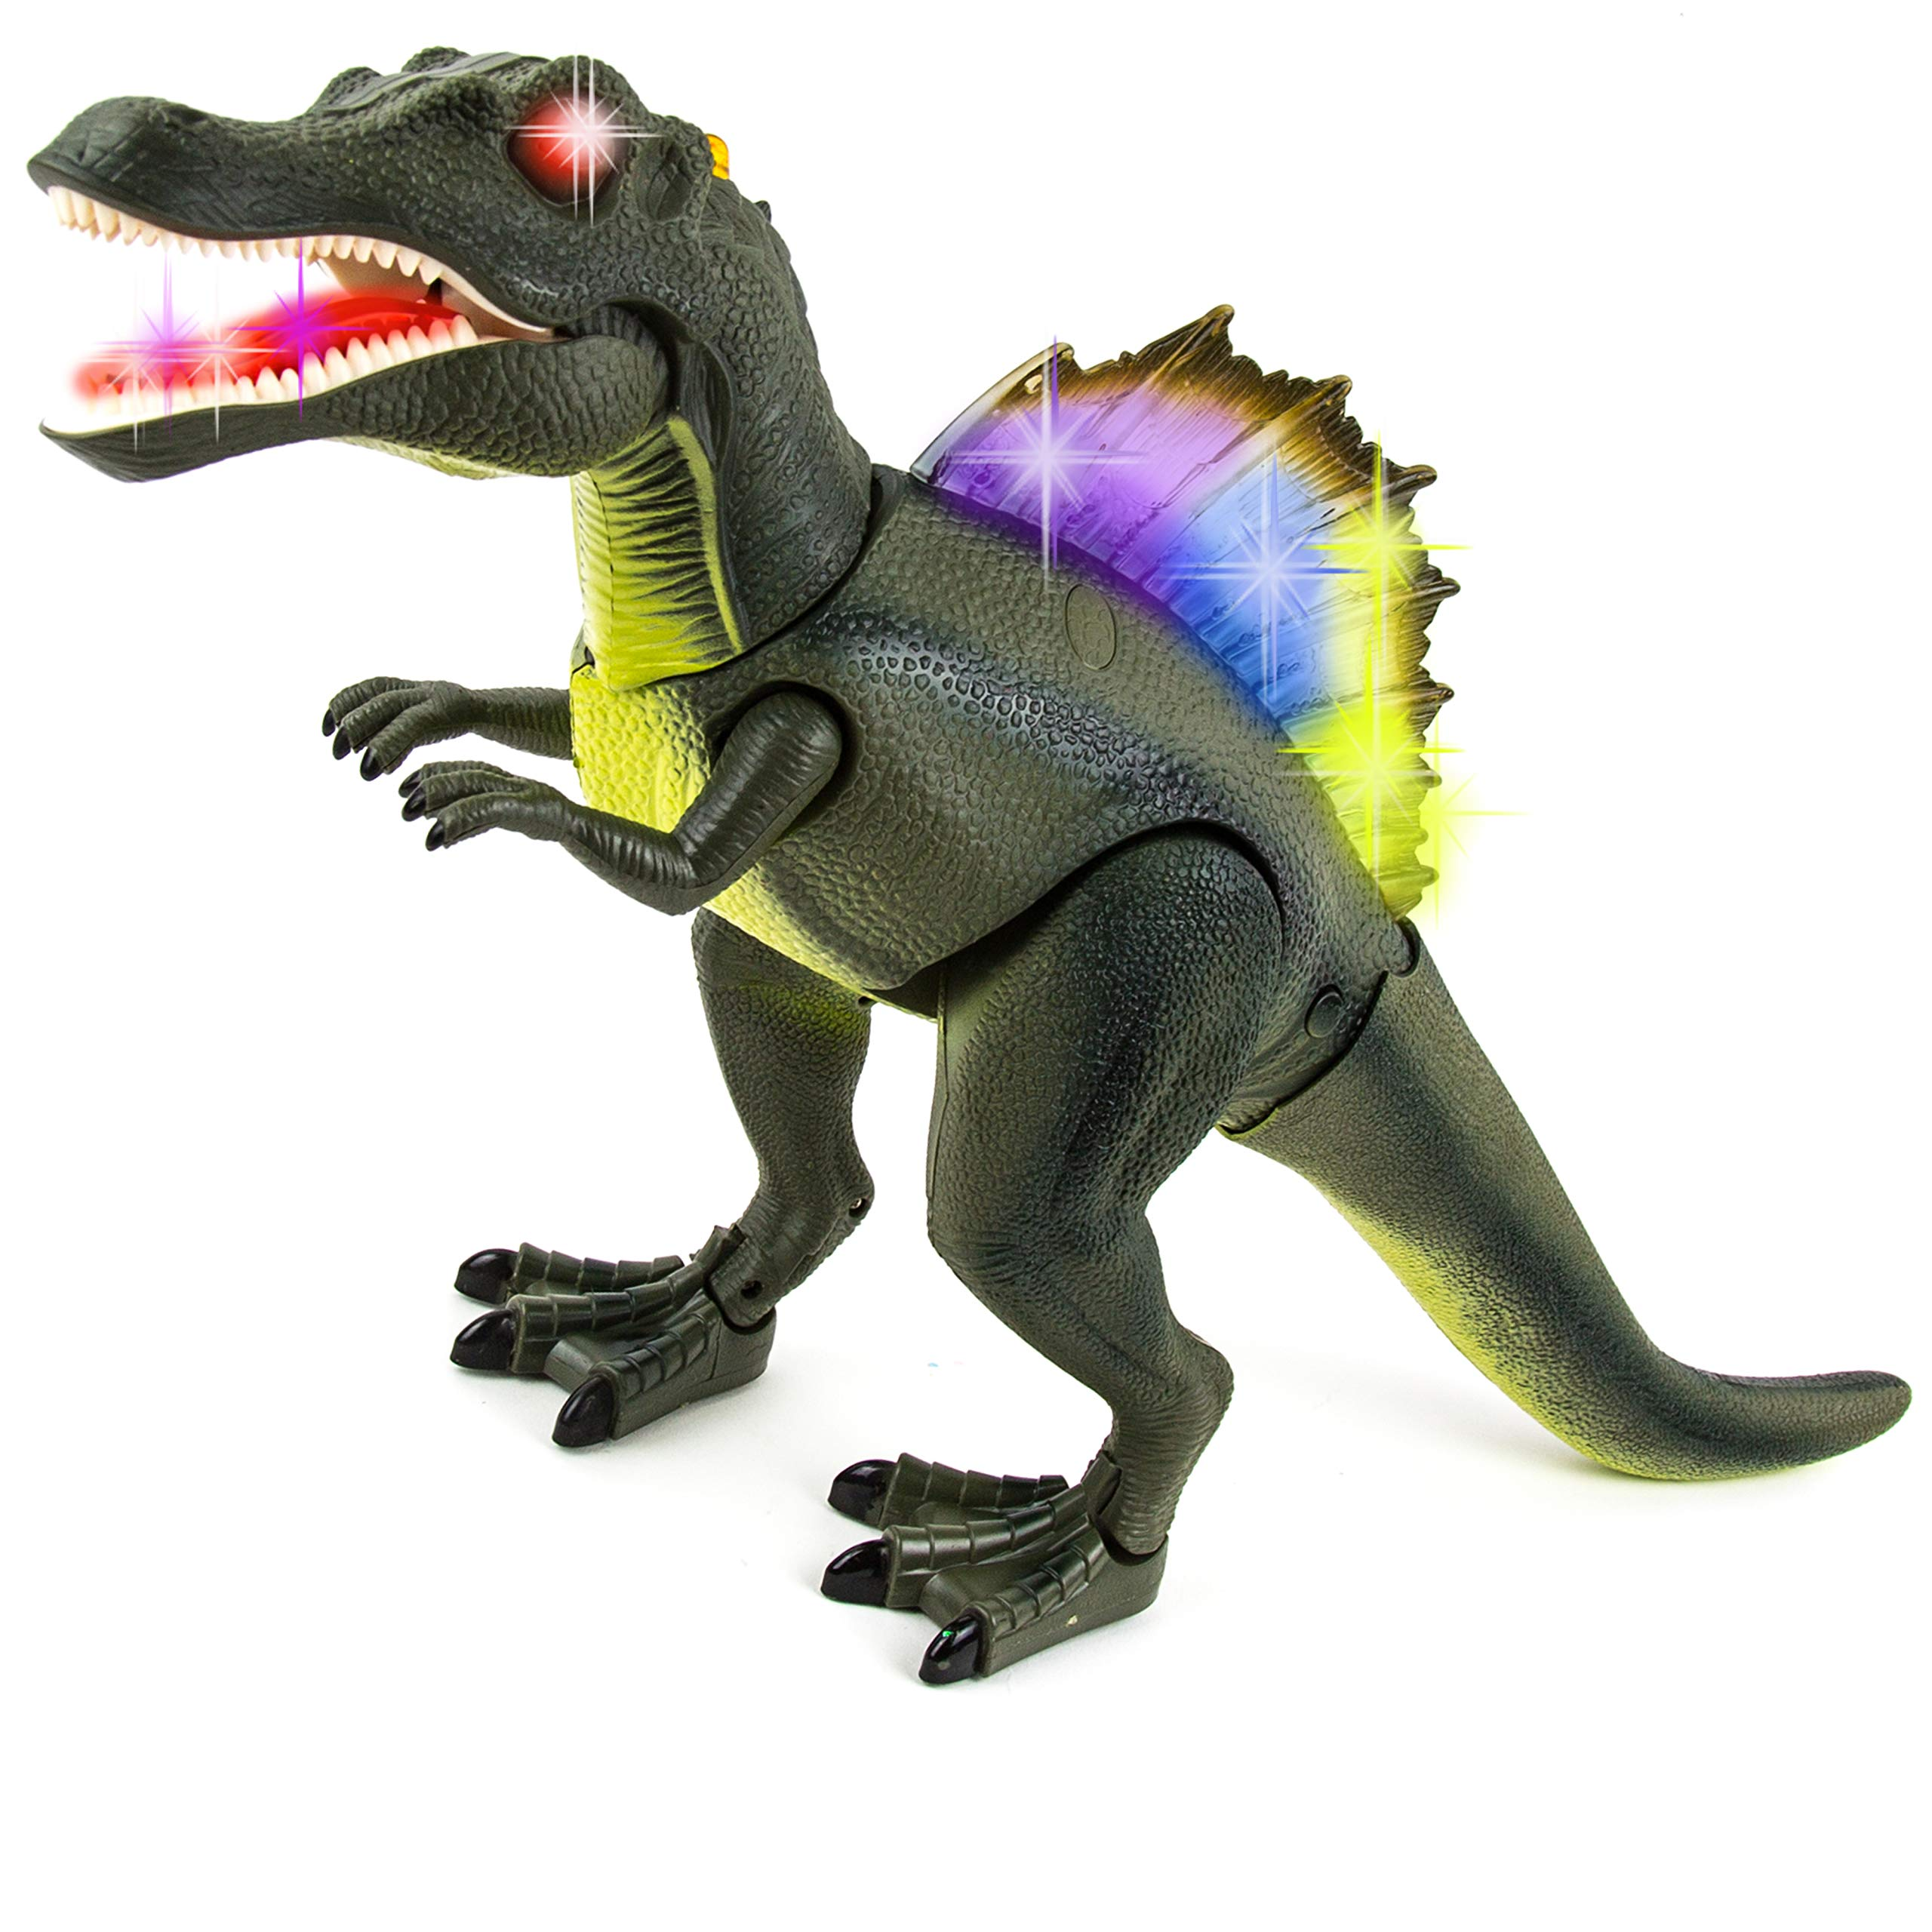 Toysery Remote Control Dinosaur Toy for Kids | RC Walking Realistic Dinosaur | Toy Roars, Lights & Sounds | Fast Forward Function | Ultimate Fun for Kids by Toysery (Image #2)